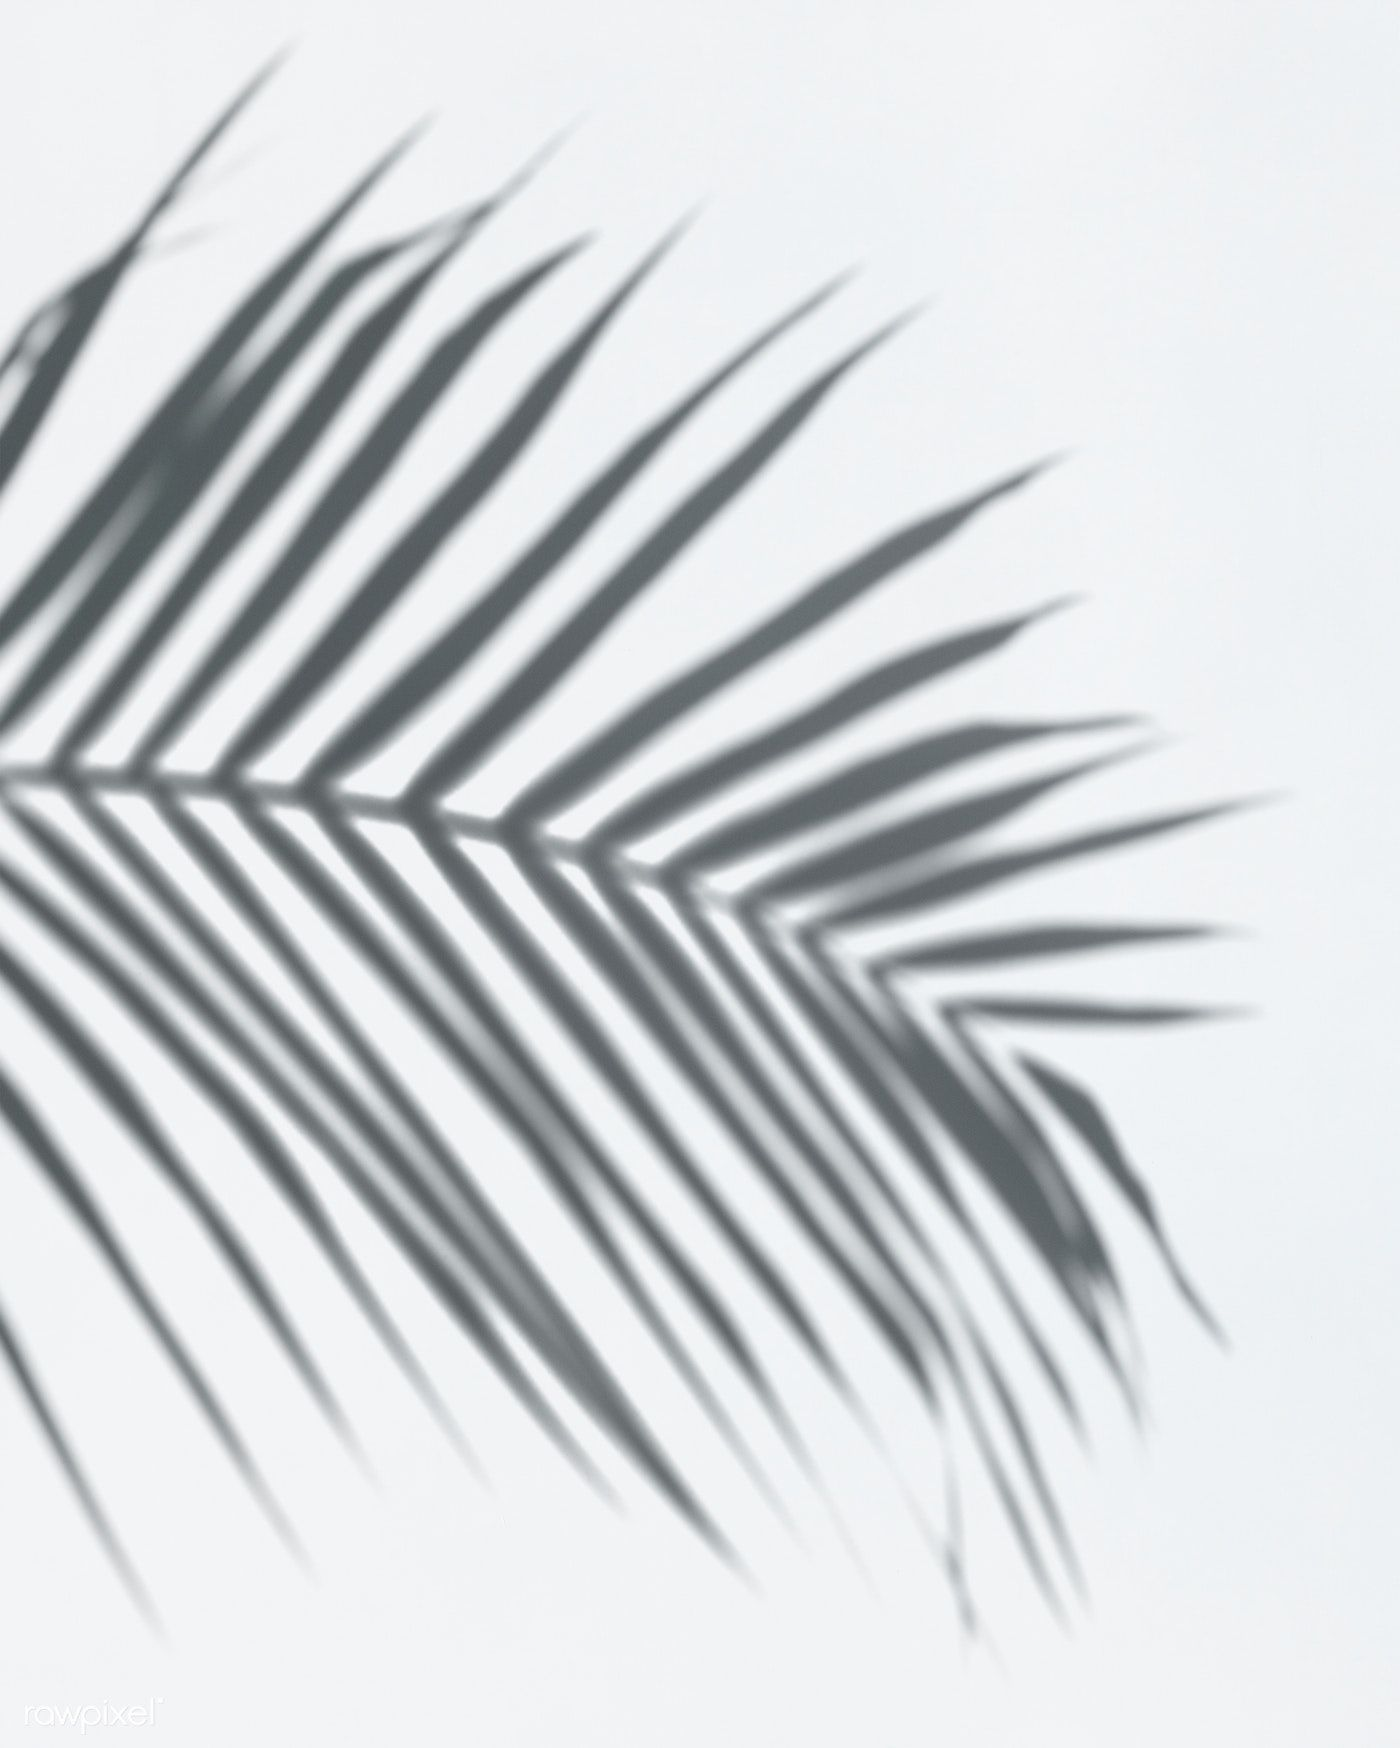 Download Premium Psd Of Shadow Of Palm Leaves On A White Wall 556145 Shadow Photography Shadow Palm Leaves